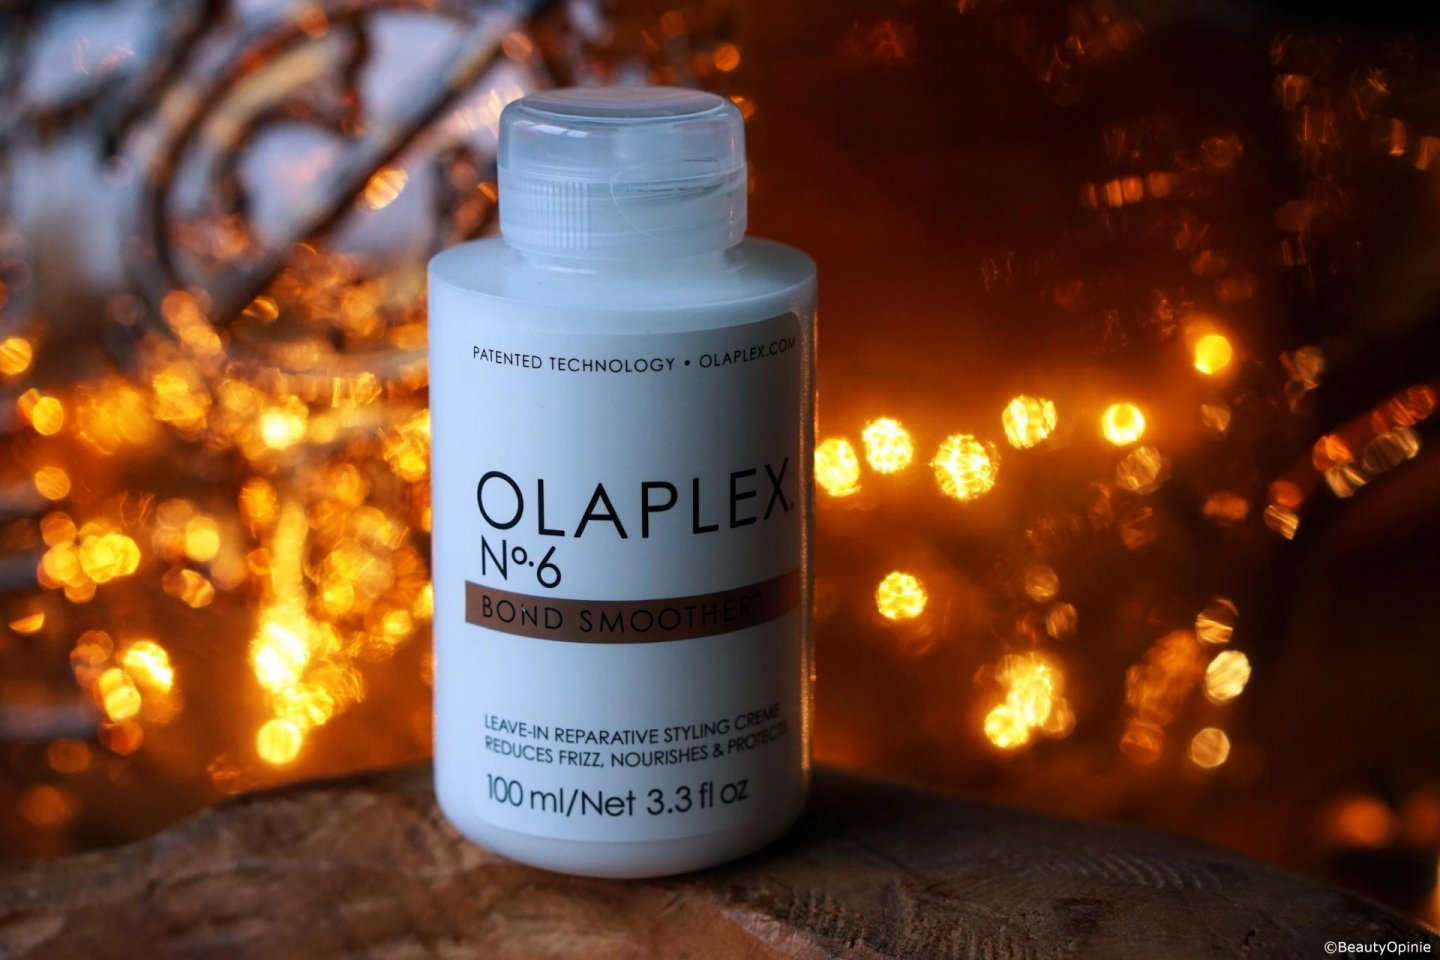 Olaplex No. 6 Bond smoother leave-in conditioner review